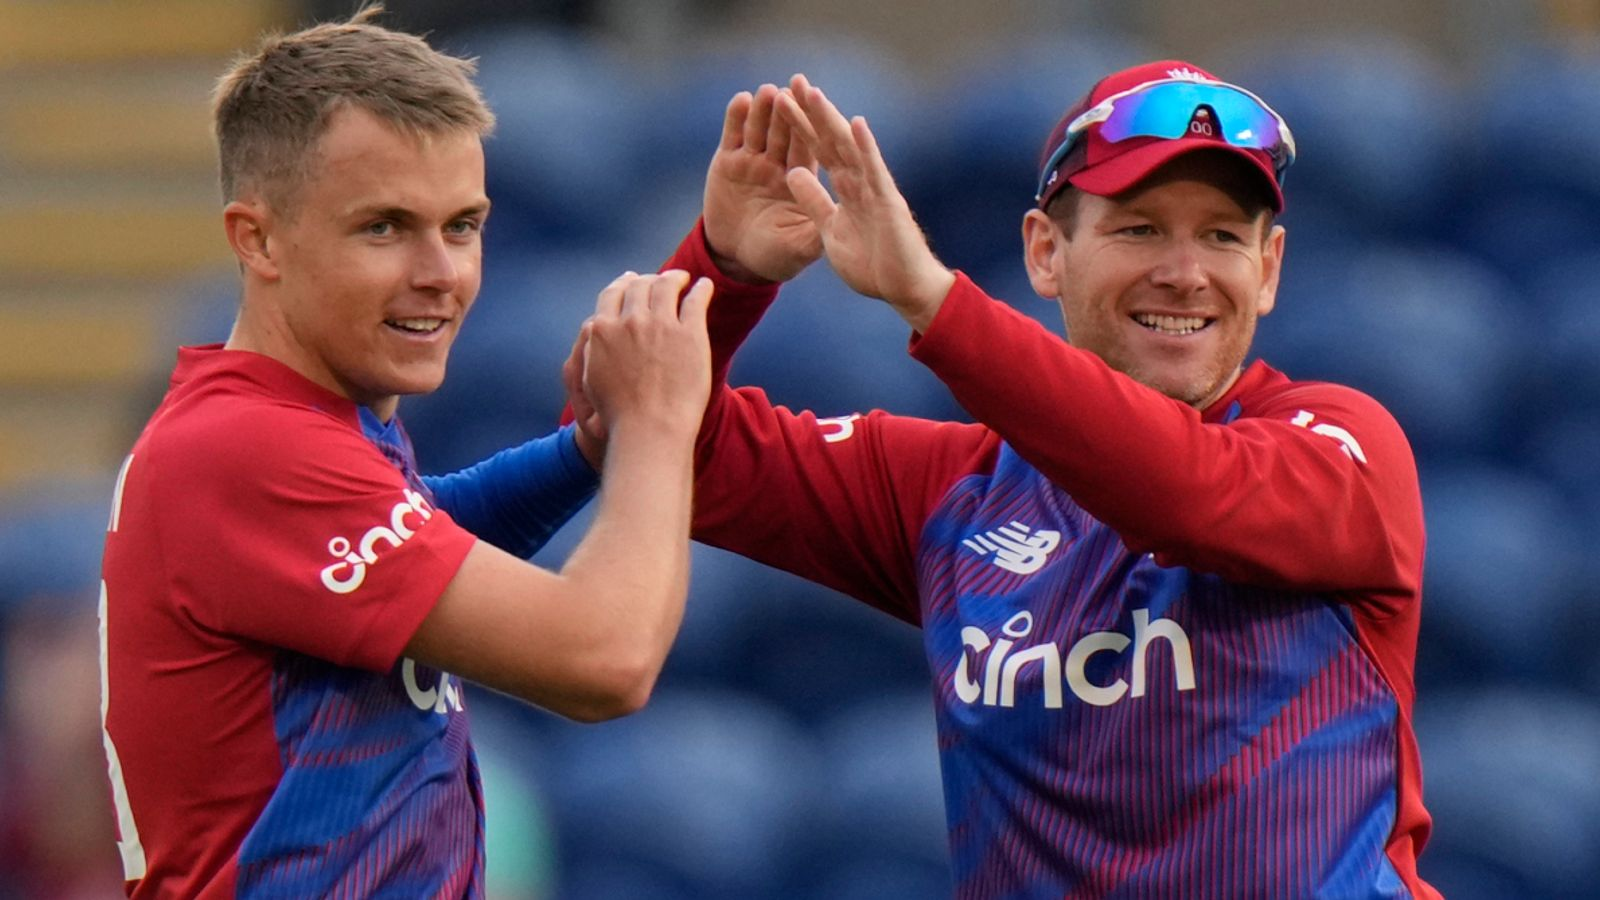 T20 World Cup: England grouped with Australia, reigning champions West Indies and South Africa - Sky Sports